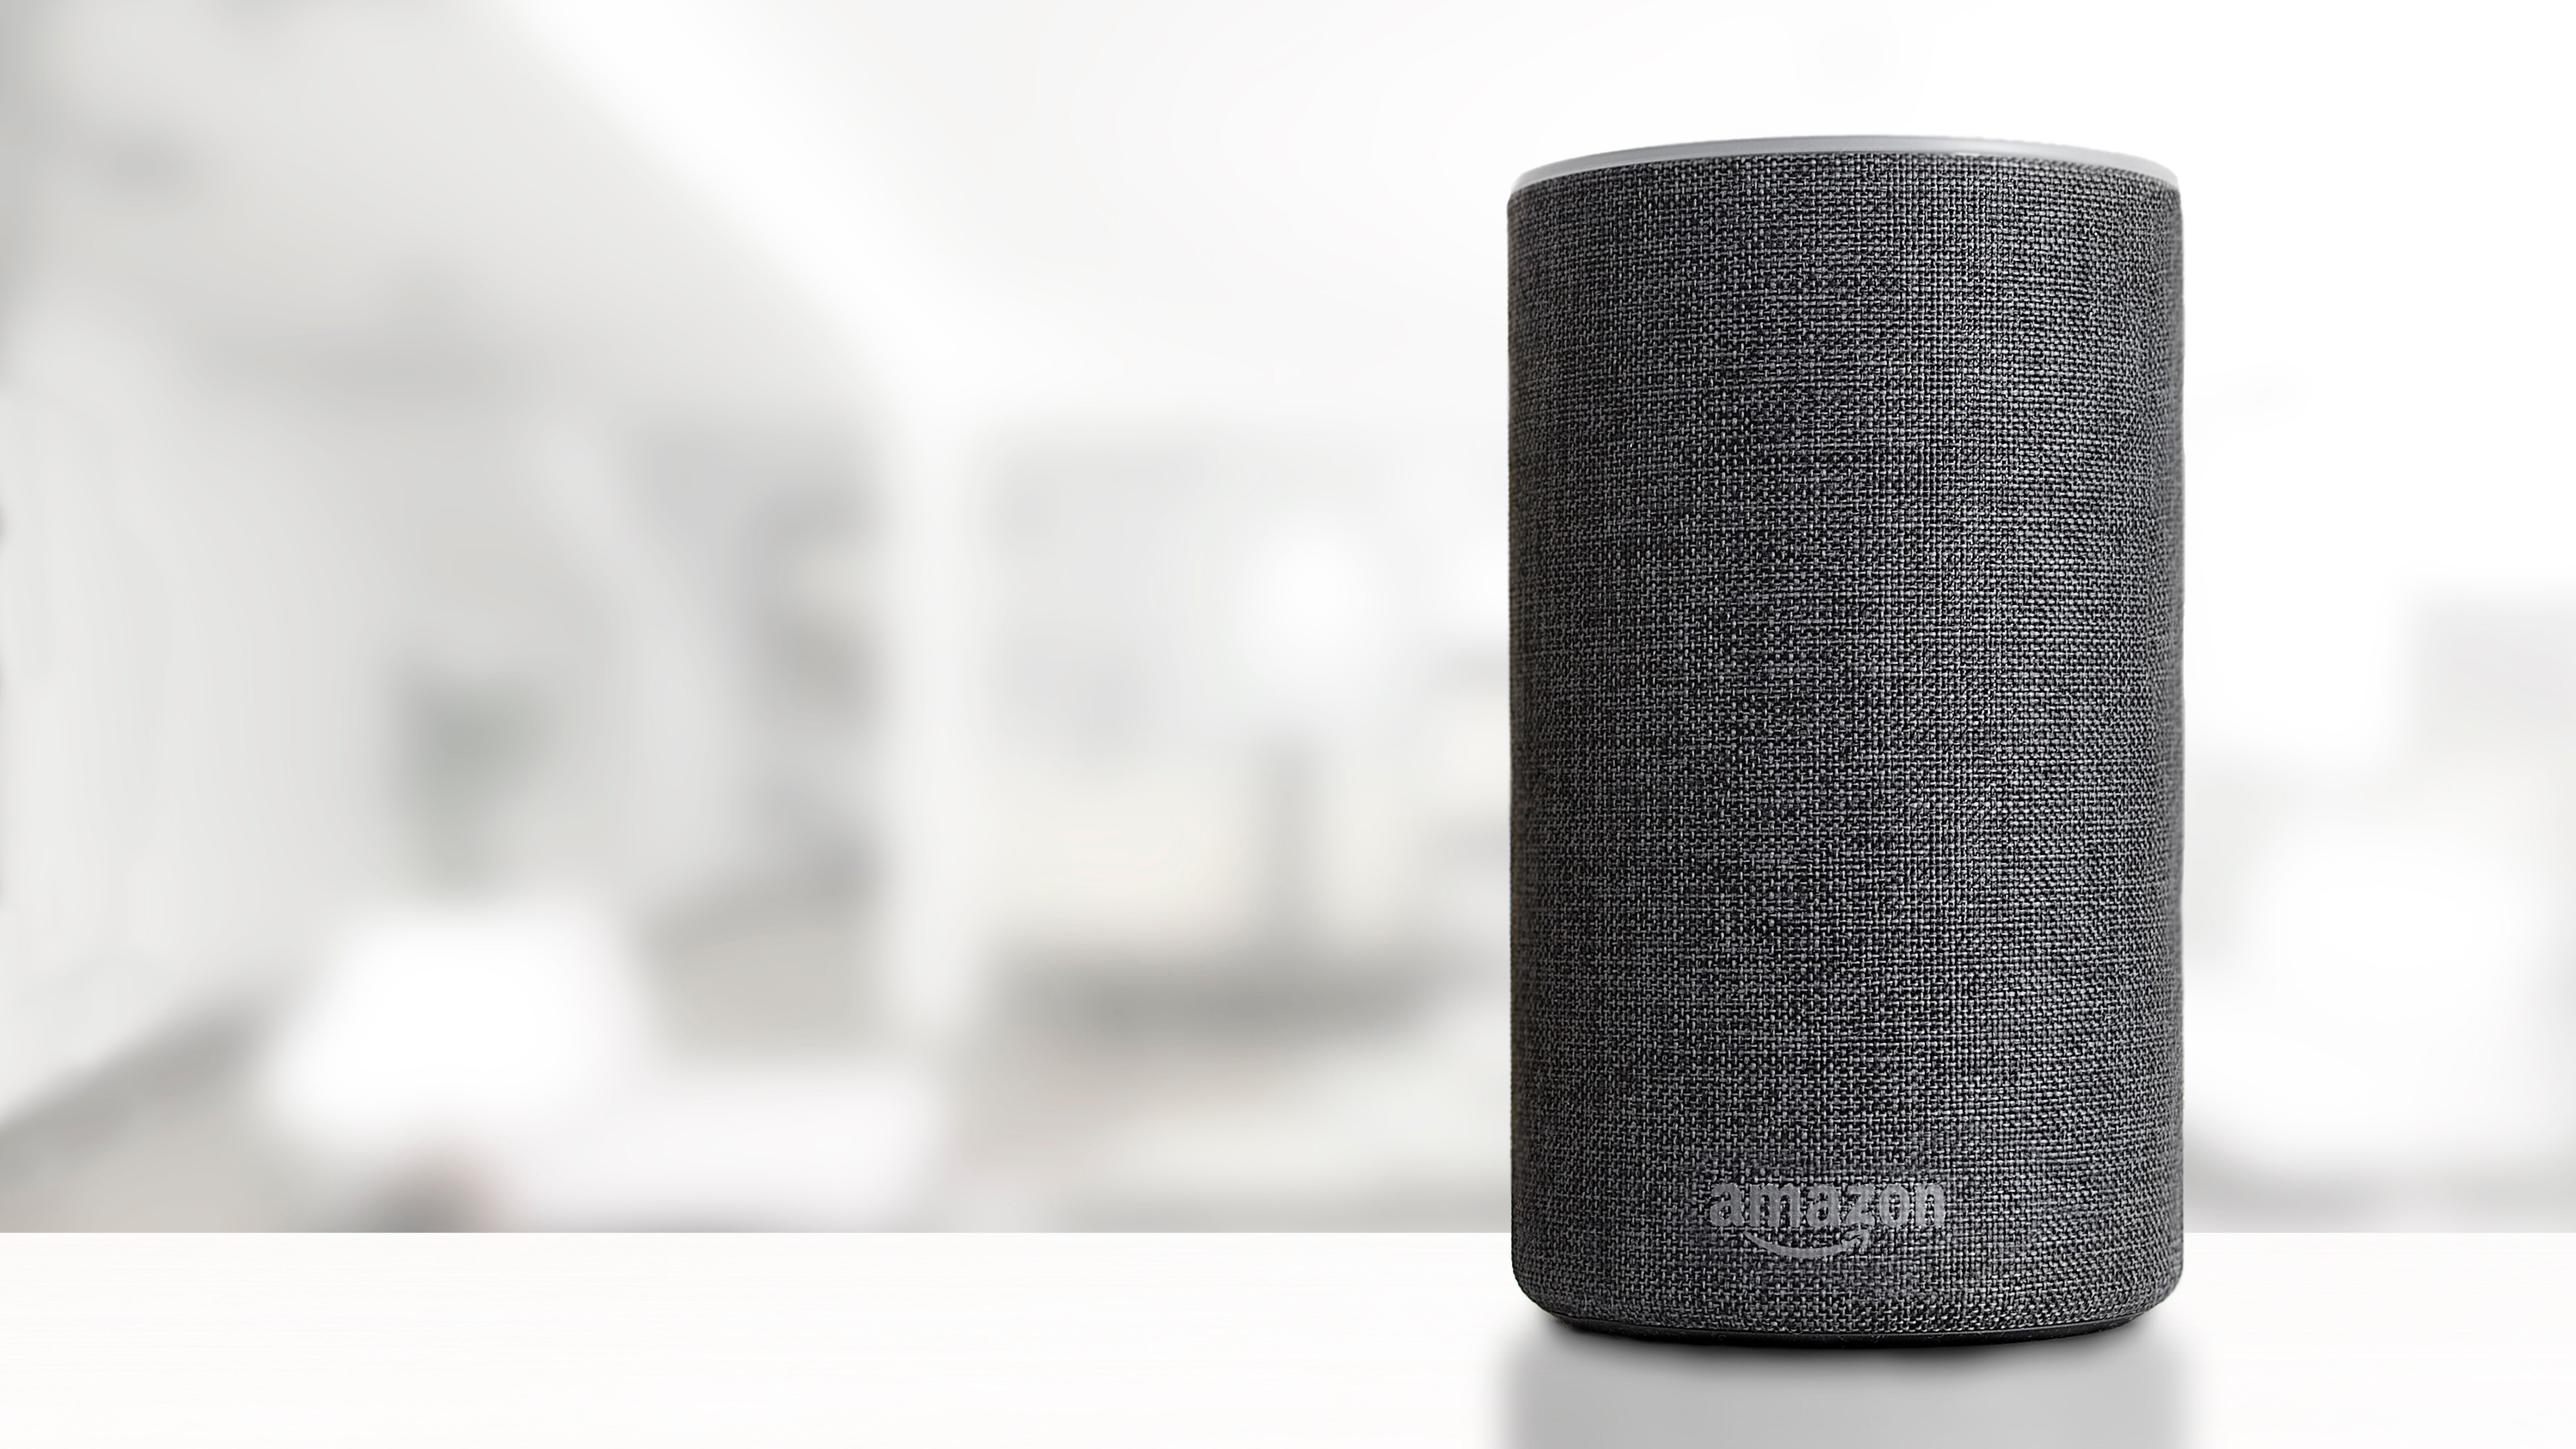 How To Play Spotify Podcasts Through Alexa